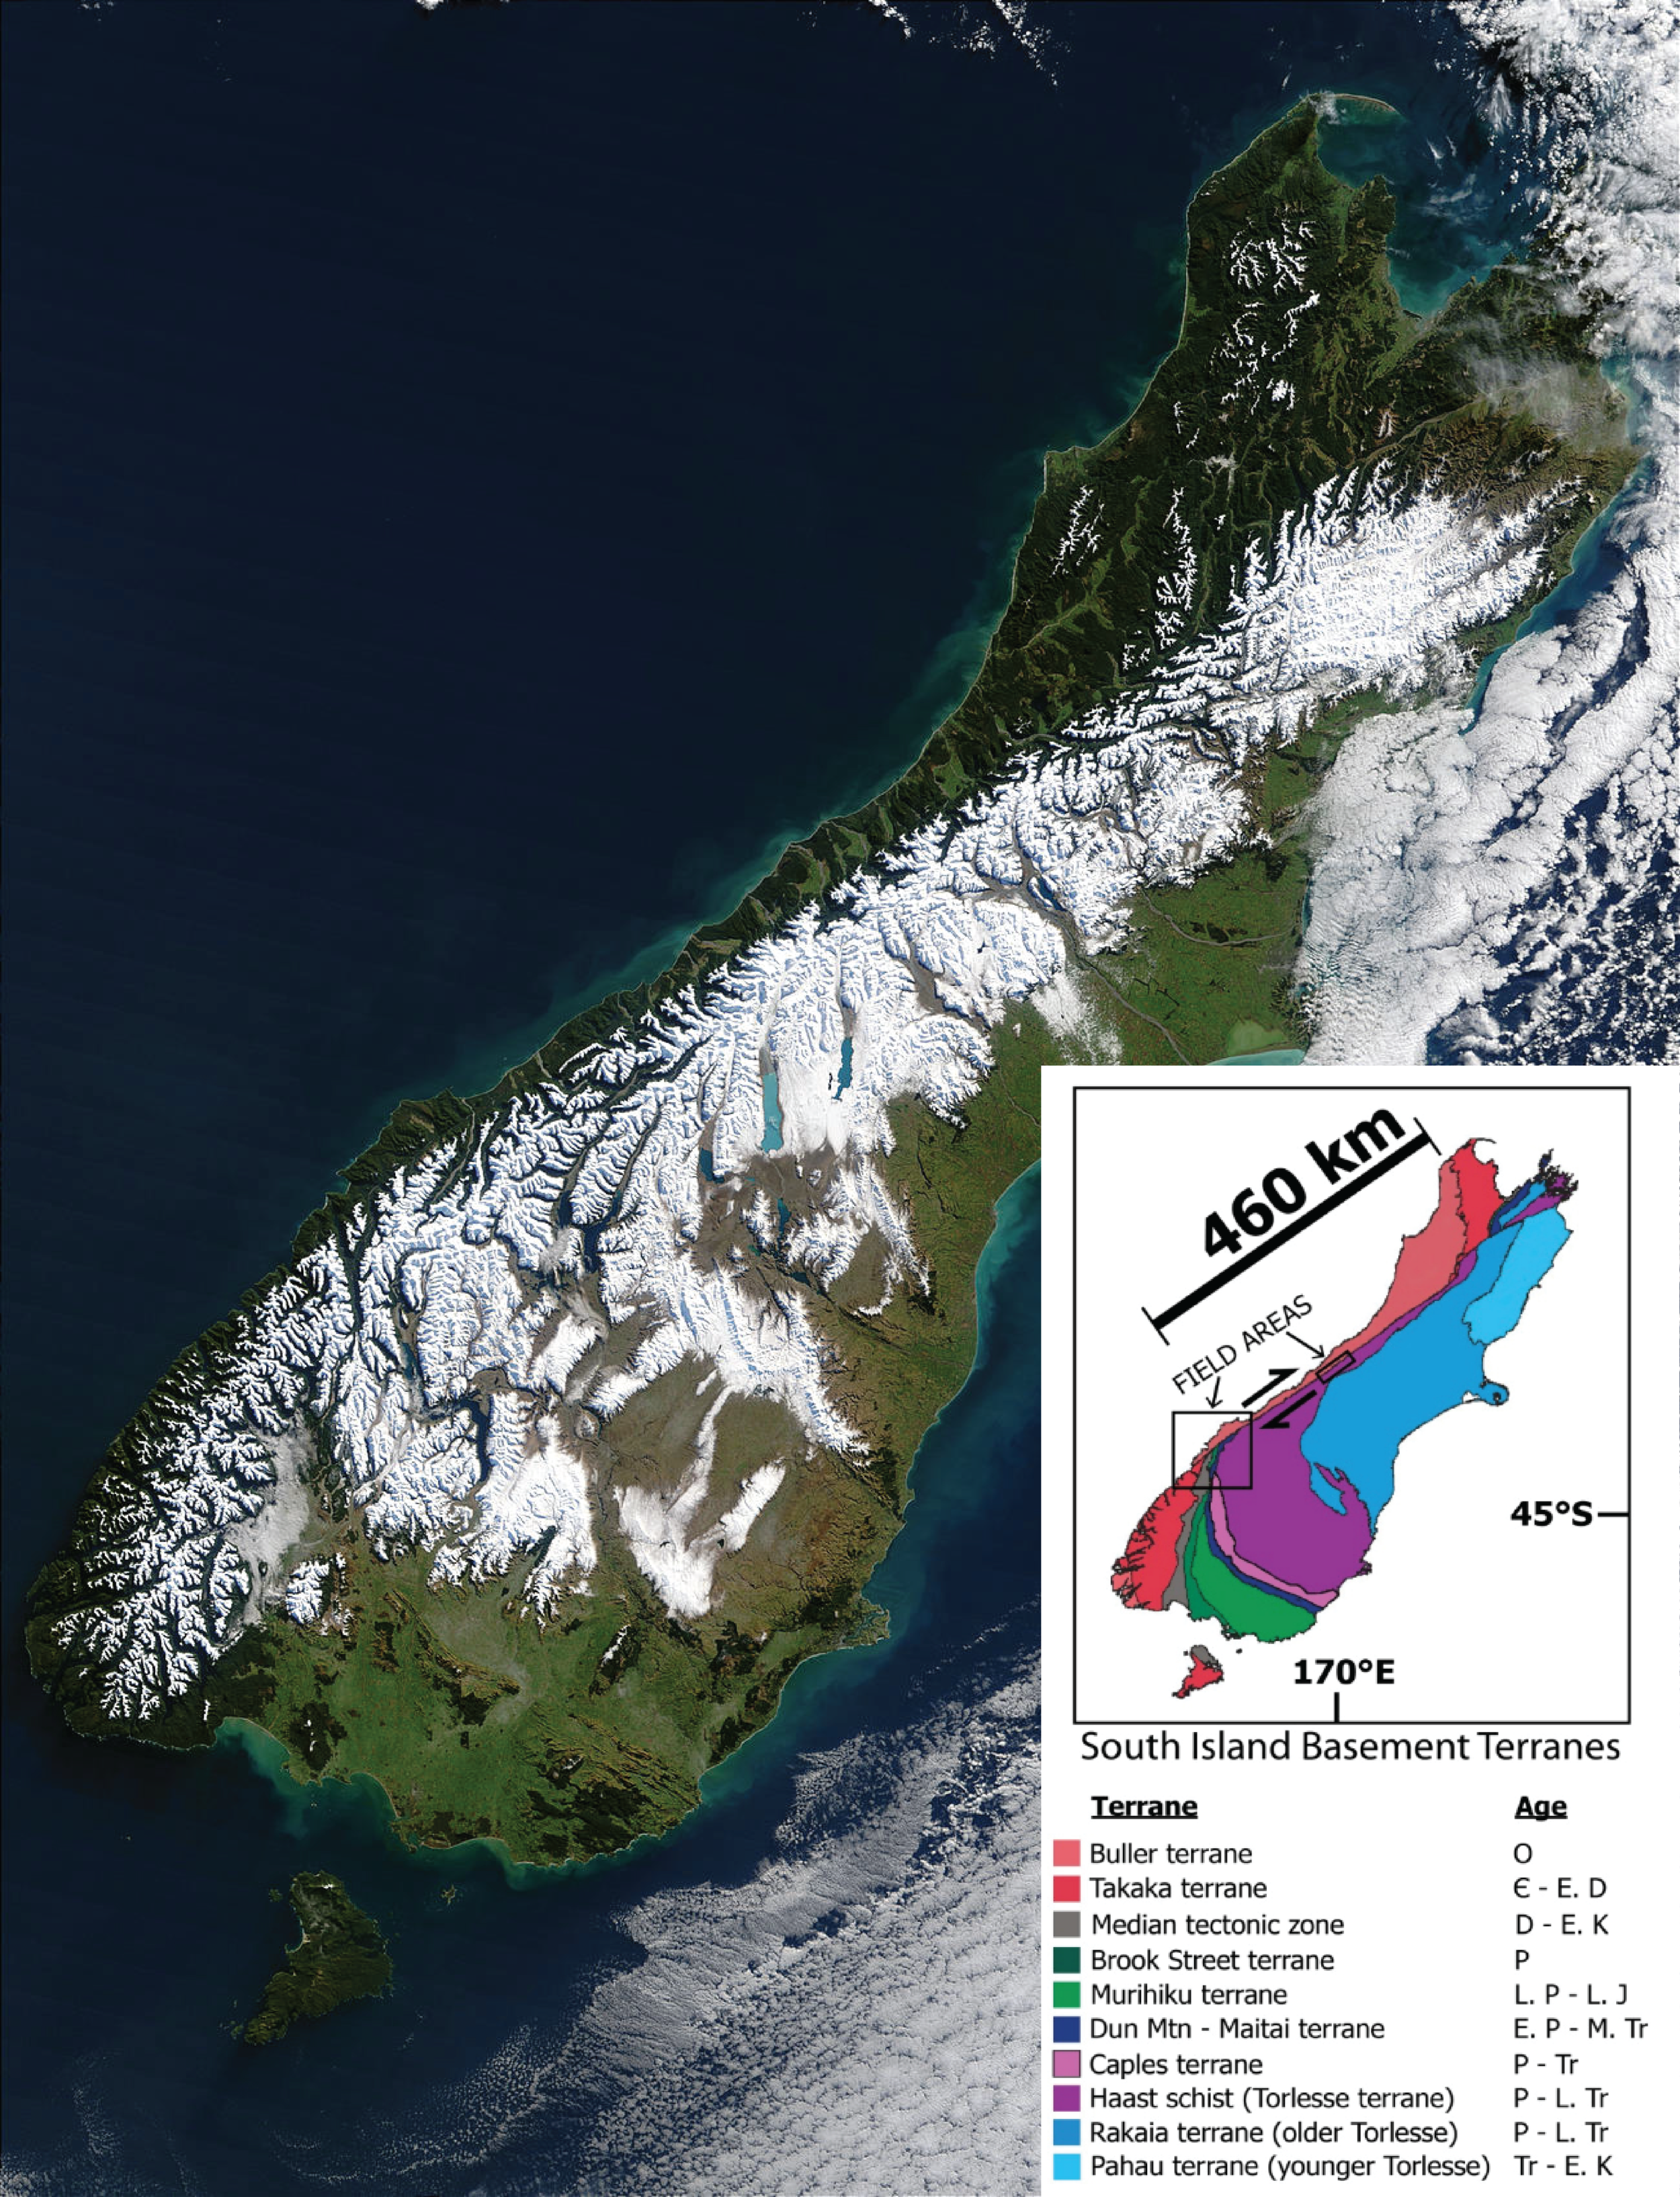 The snowline after a major 2003 blizzard clearly delineates the Alpine Fault along the west coast thanks to rapid tectonic uplift on the eastern side of the fault (Source: NASA Earth Observatory). Inset shows the major basement rock terranes of NZ (Barth, 2012). The Dun Mountain - Maitai terrane (dark blue) is a key piercing point, offset by ~460km.